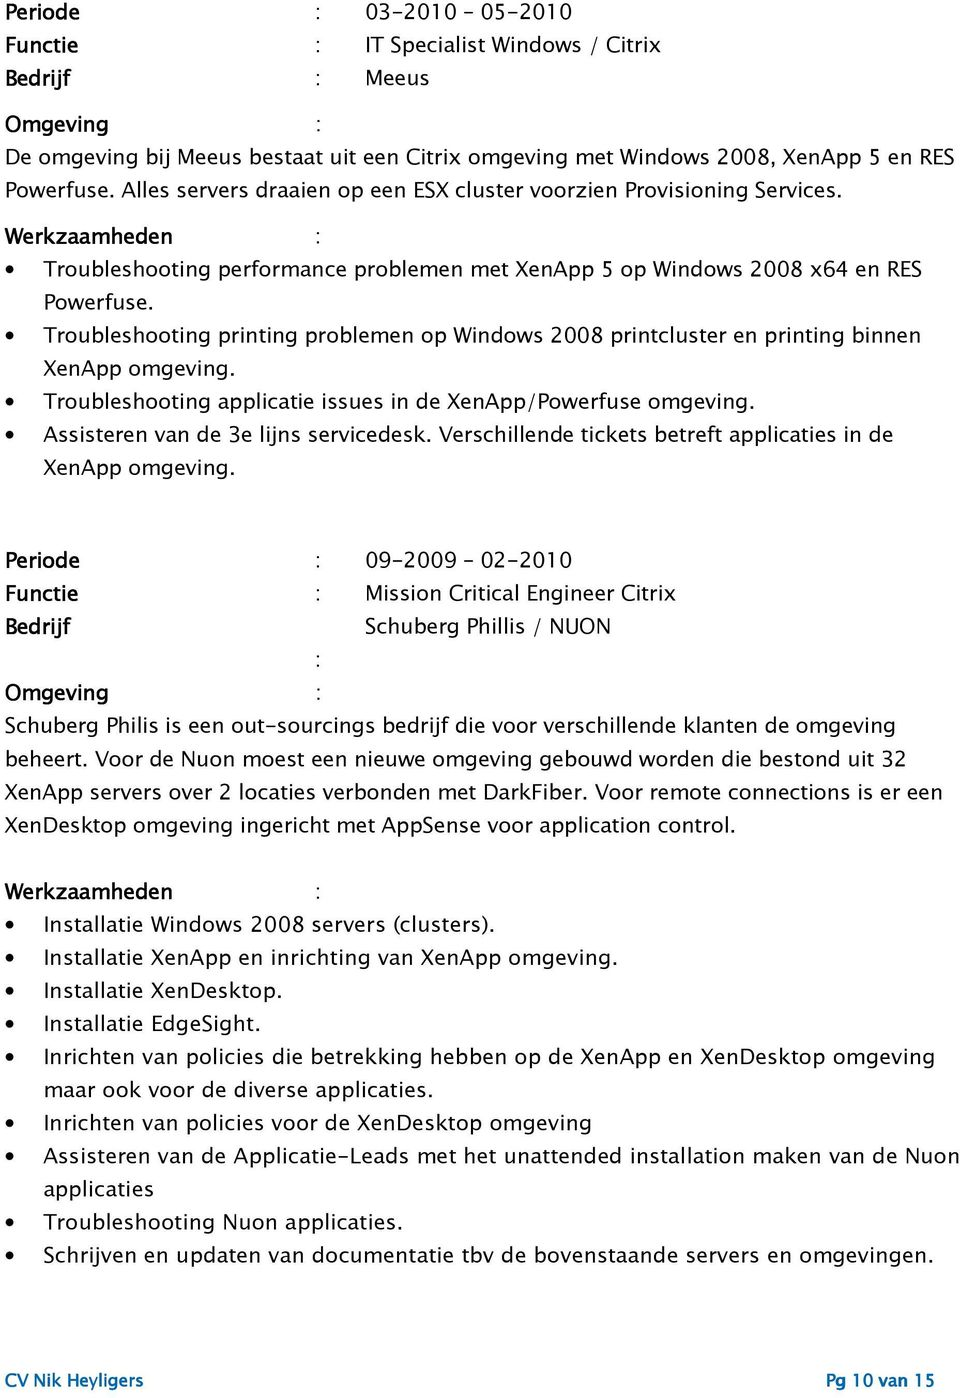 Troubleshooting printing problemen op Windows 2008 printcluster en printing binnen XenApp omgeving. Troubleshooting applicatie issues in de XenApp/Powerfuse omgeving.